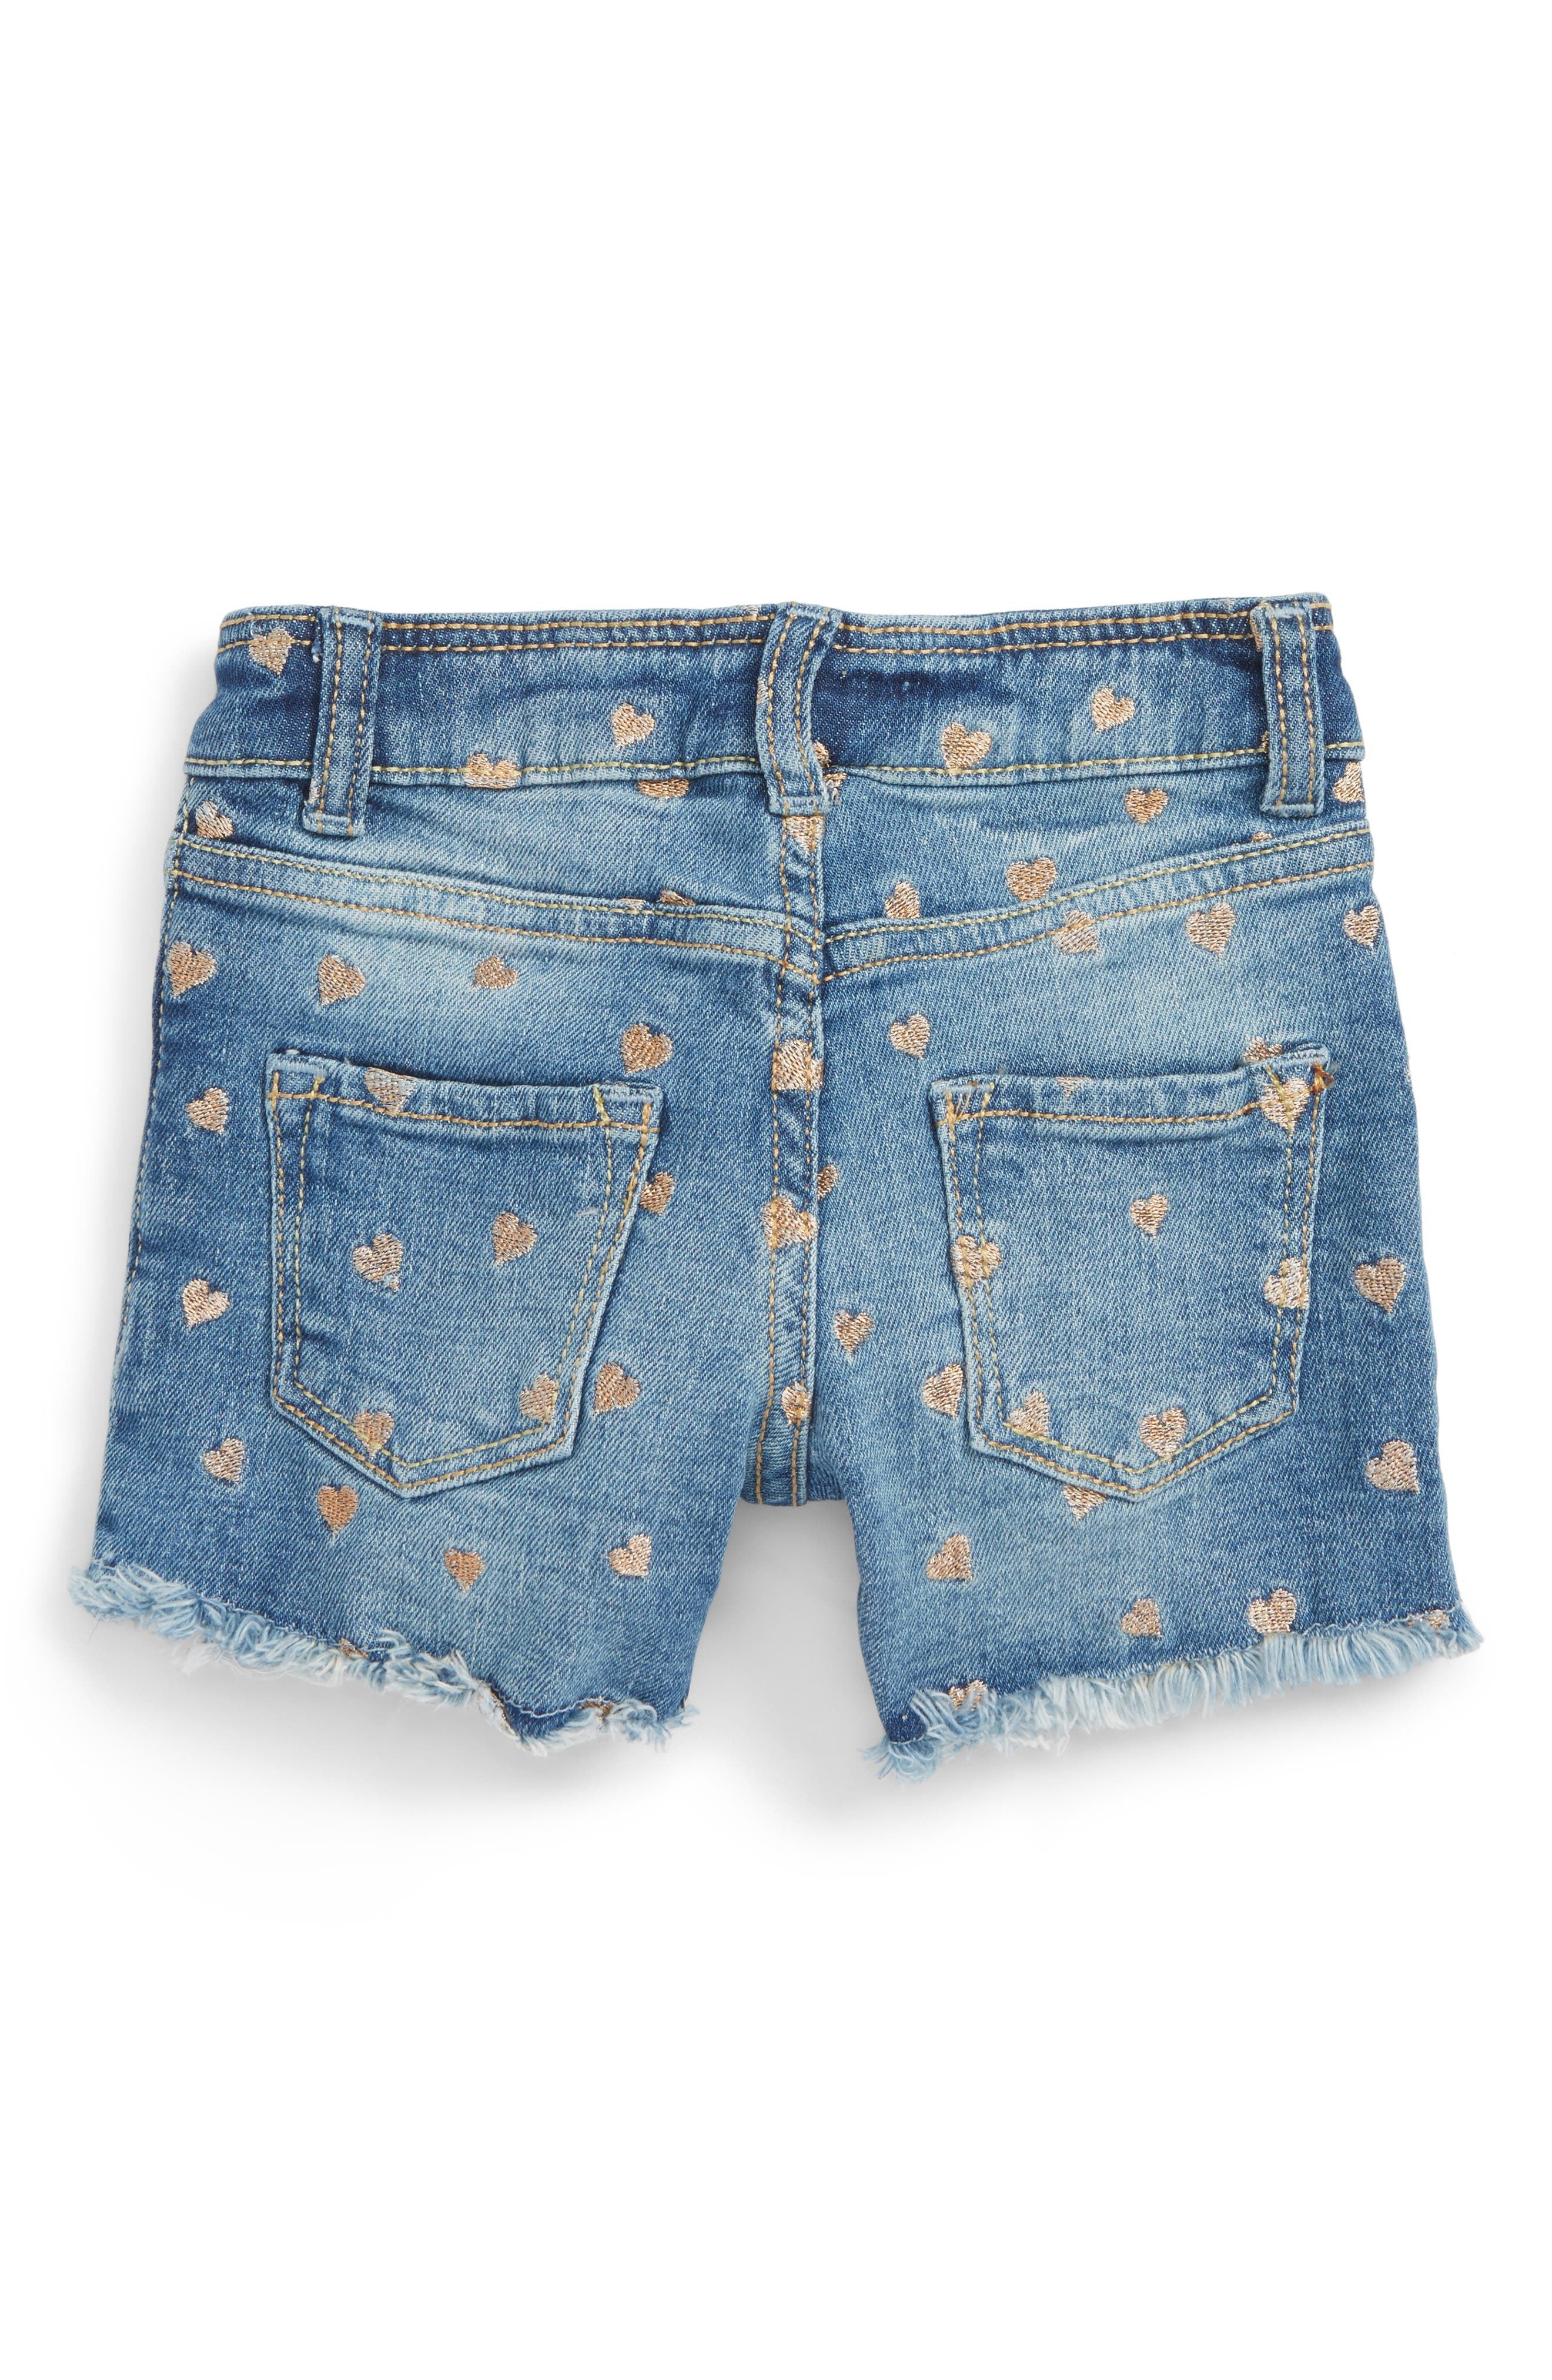 Mini Heart Cutoff Denim Shorts,                         Main,                         color, 416